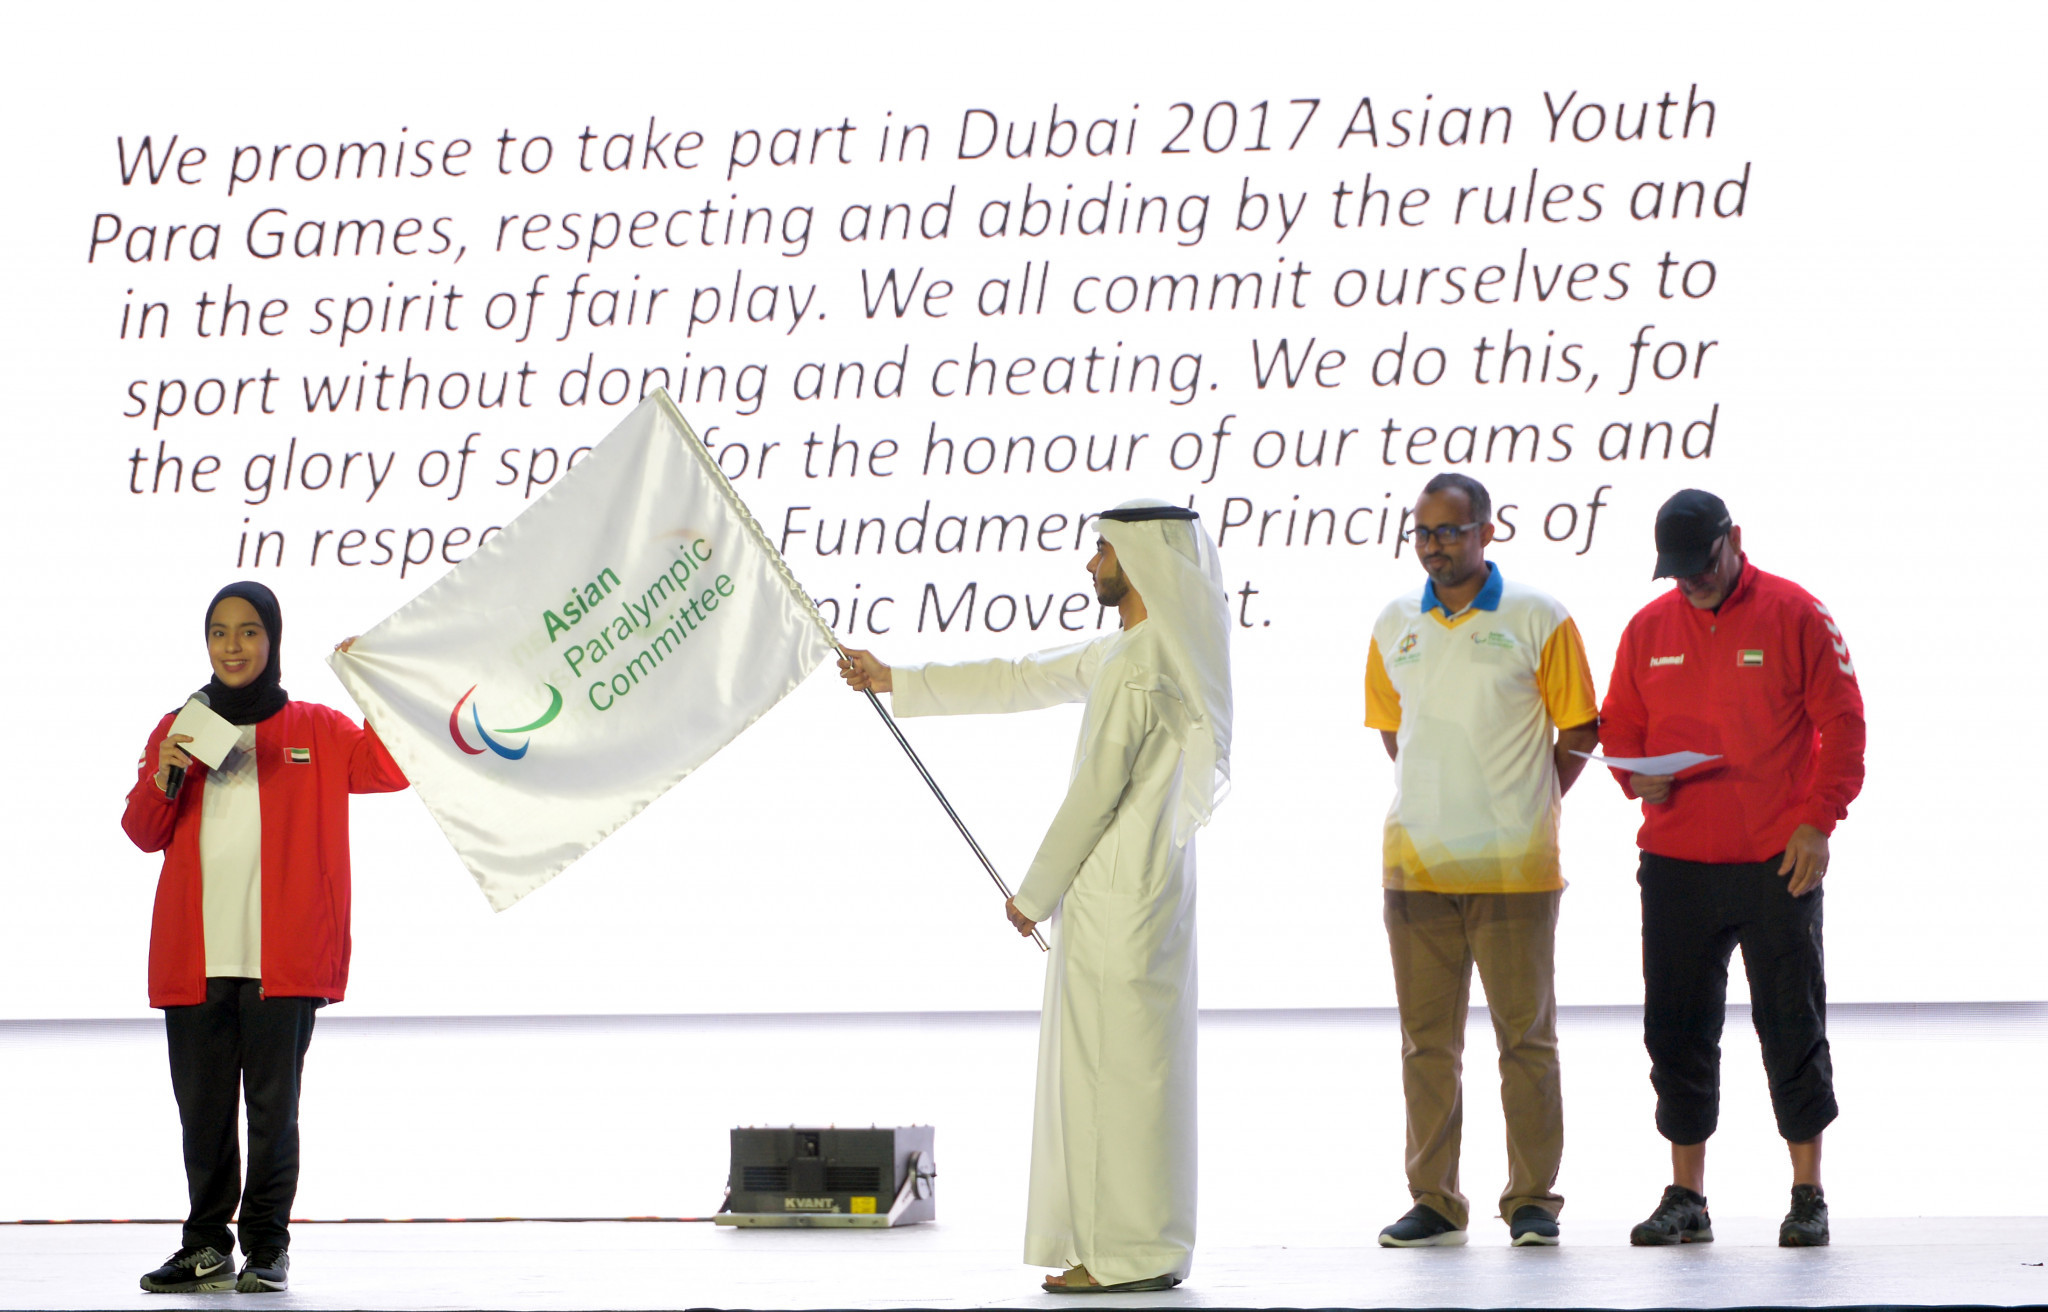 Athlete%20Oath%20AYPG - Asian Youth Games 2017 Dubai